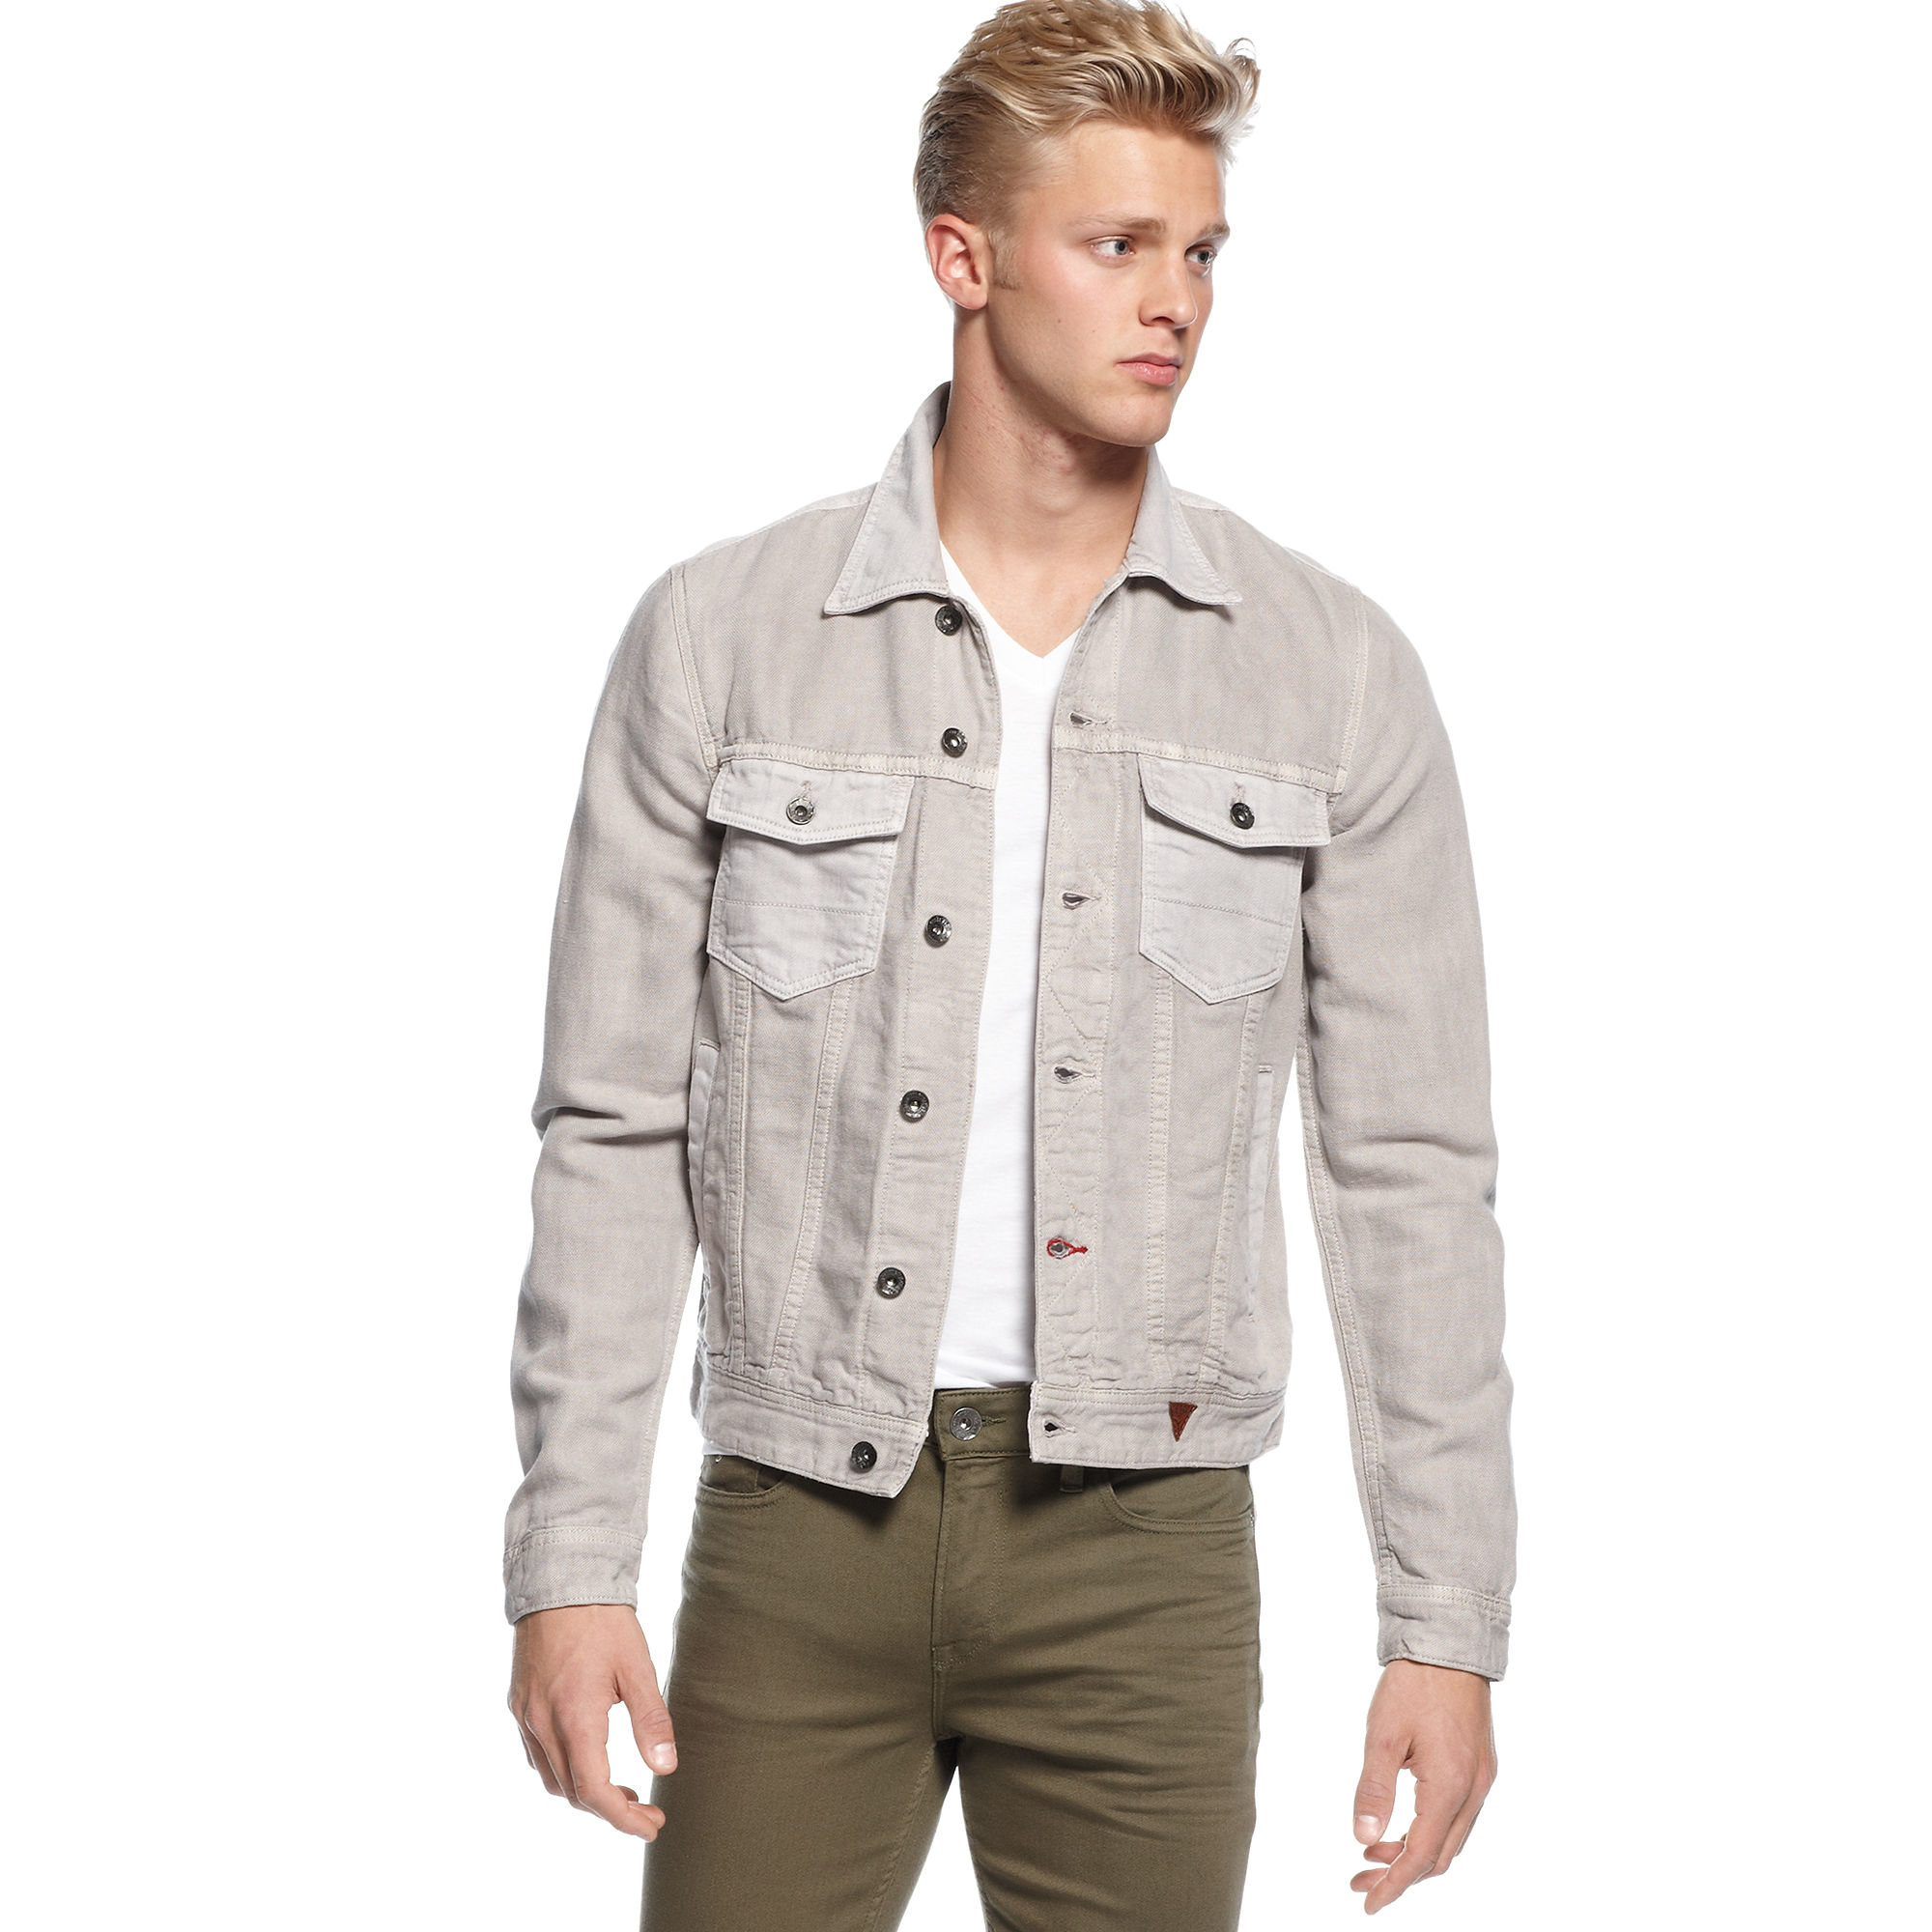 Guess Jeans Jacket Buttonfront Denim Arachno Wash in Gray ...